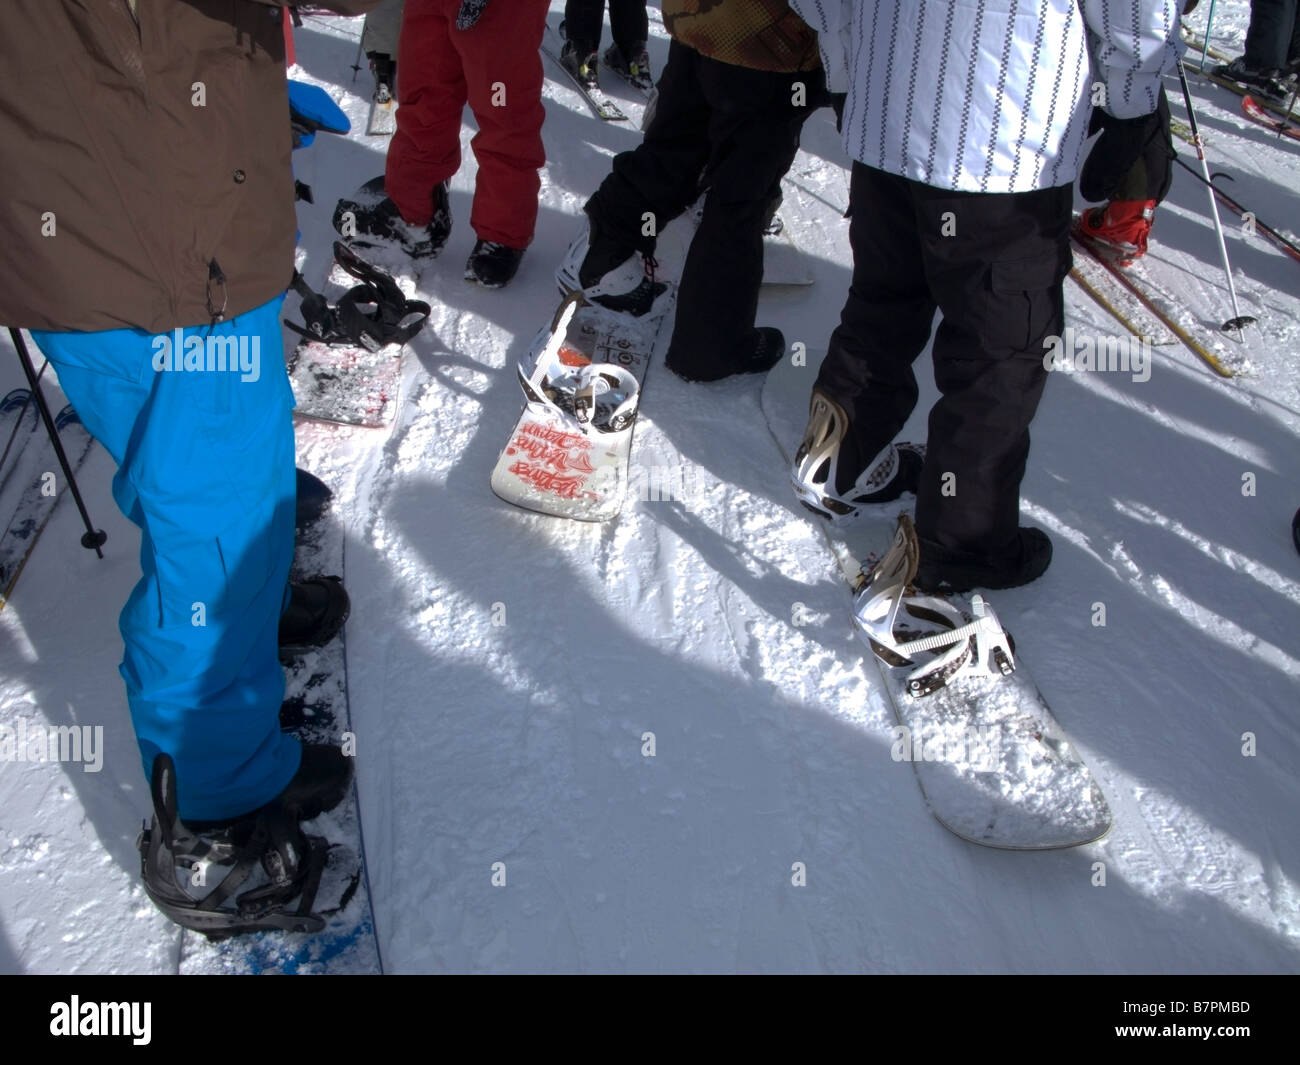 Snowboarders waiting in the chairlift line at Alpine Meadows Ski Area above North Lake Tahoe, CA. Stock Photo